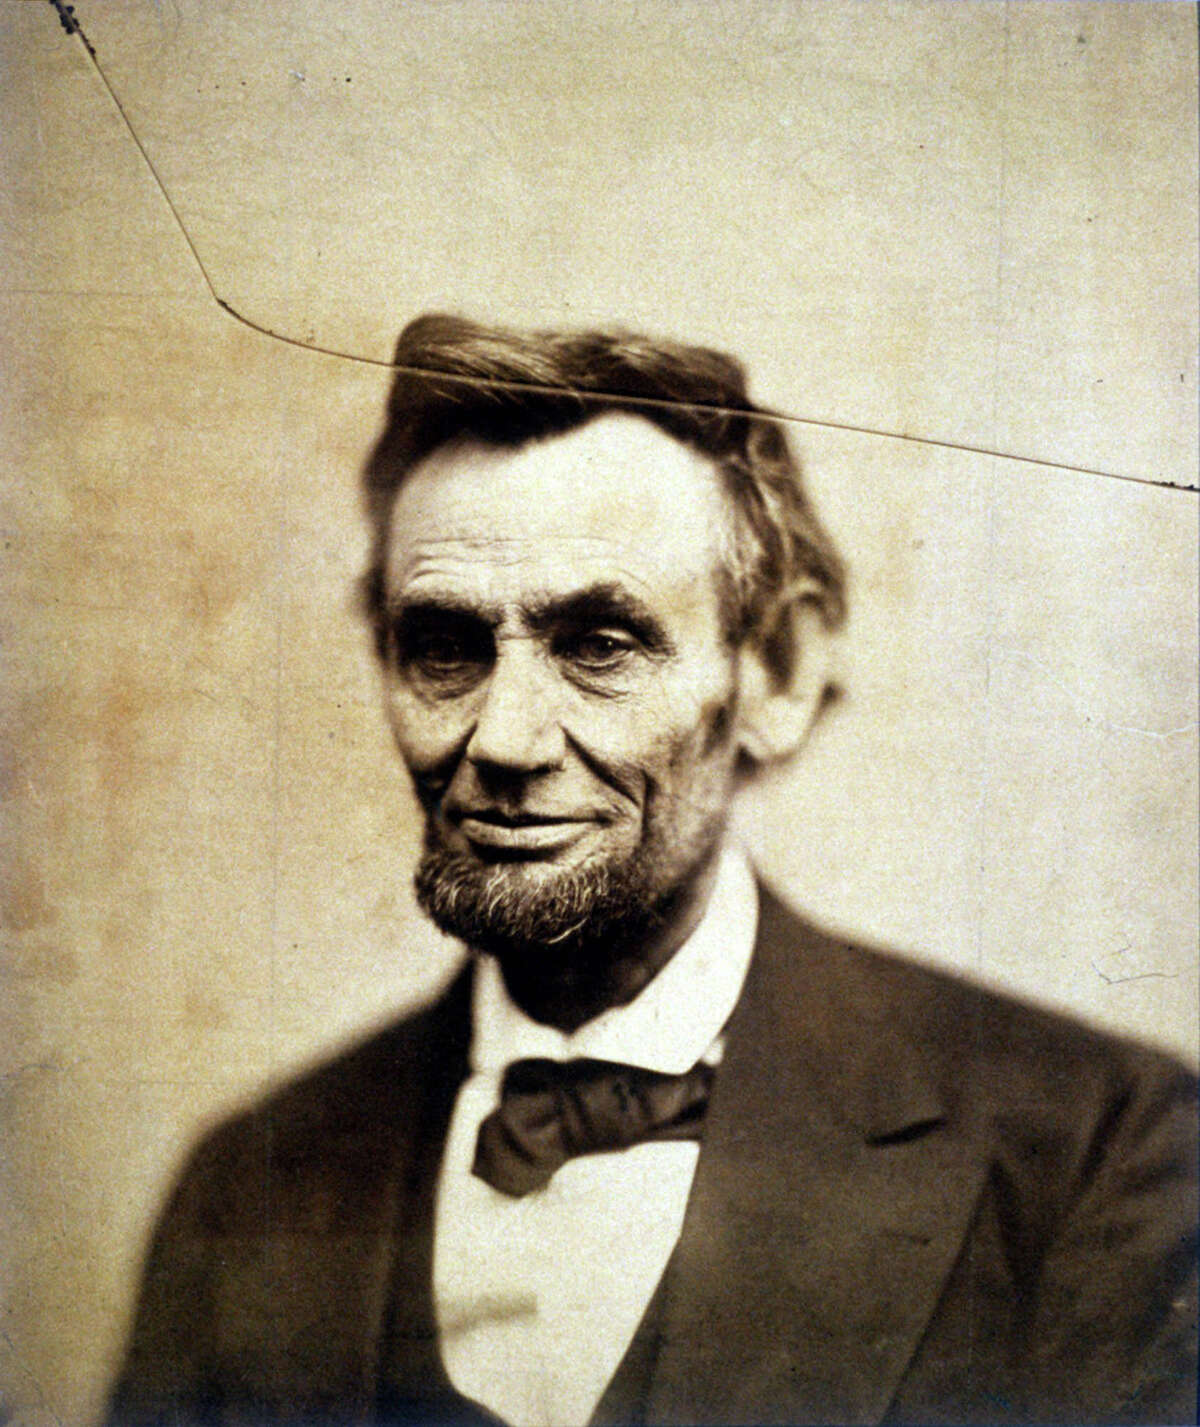 """In 1862, President Abraham Lincoln sent his Second Annual Message to Congress, in which he called for the abolition of slavery, and went on to say, """"Fellow citizens, we cannot escape history. We of this Congress and this administration will be remembered in spite of ourselves."""""""